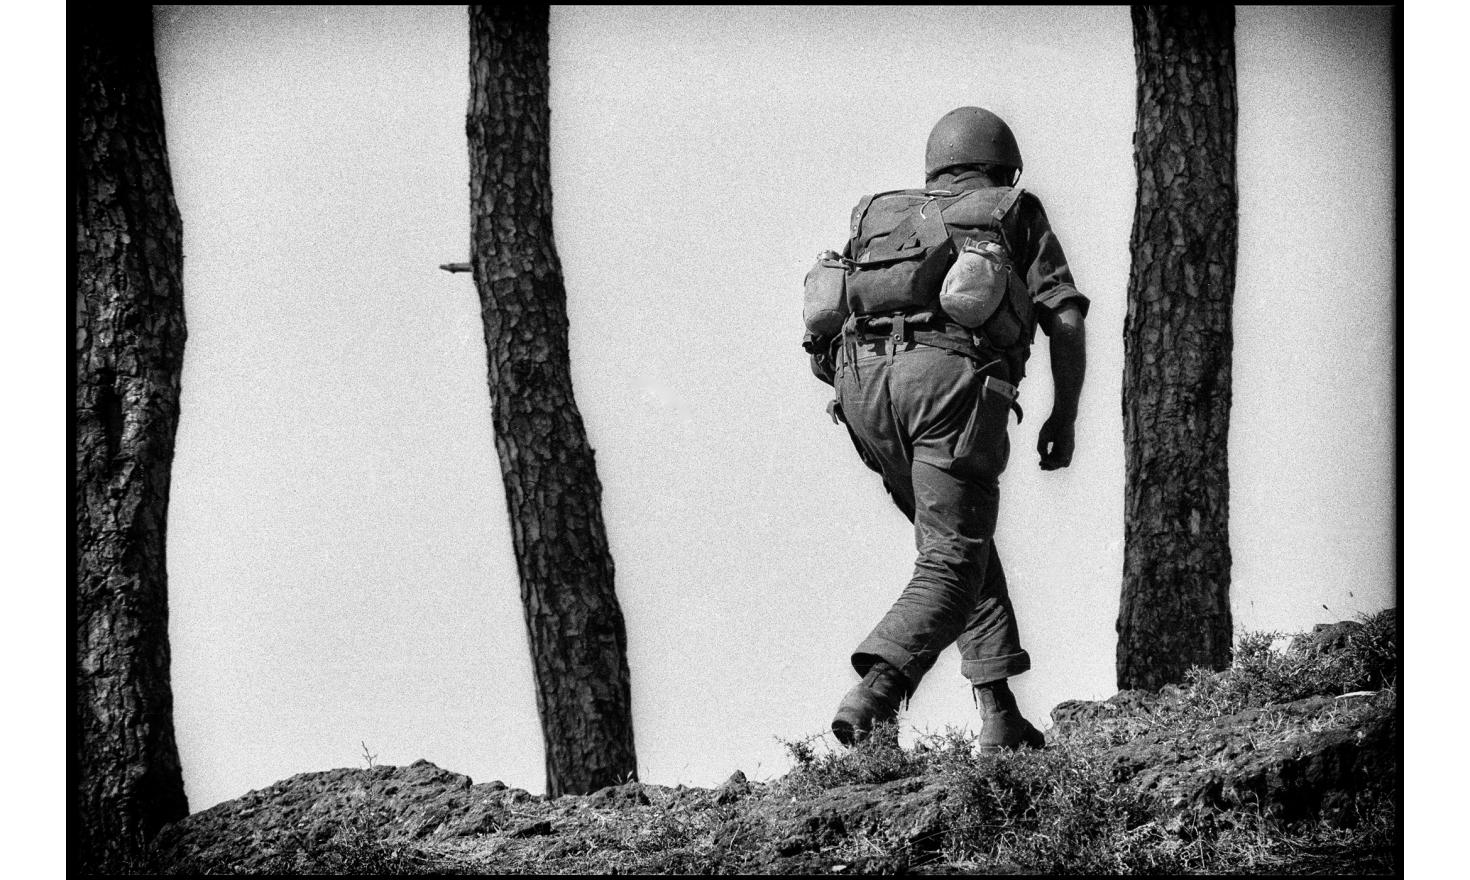 Israeli invasion of Lebanon, Front line. Peace in Galilee Operation. Southern Lebanon. Phalangist soldiers fighting along with the israeli army. June 6- July 16, 1982